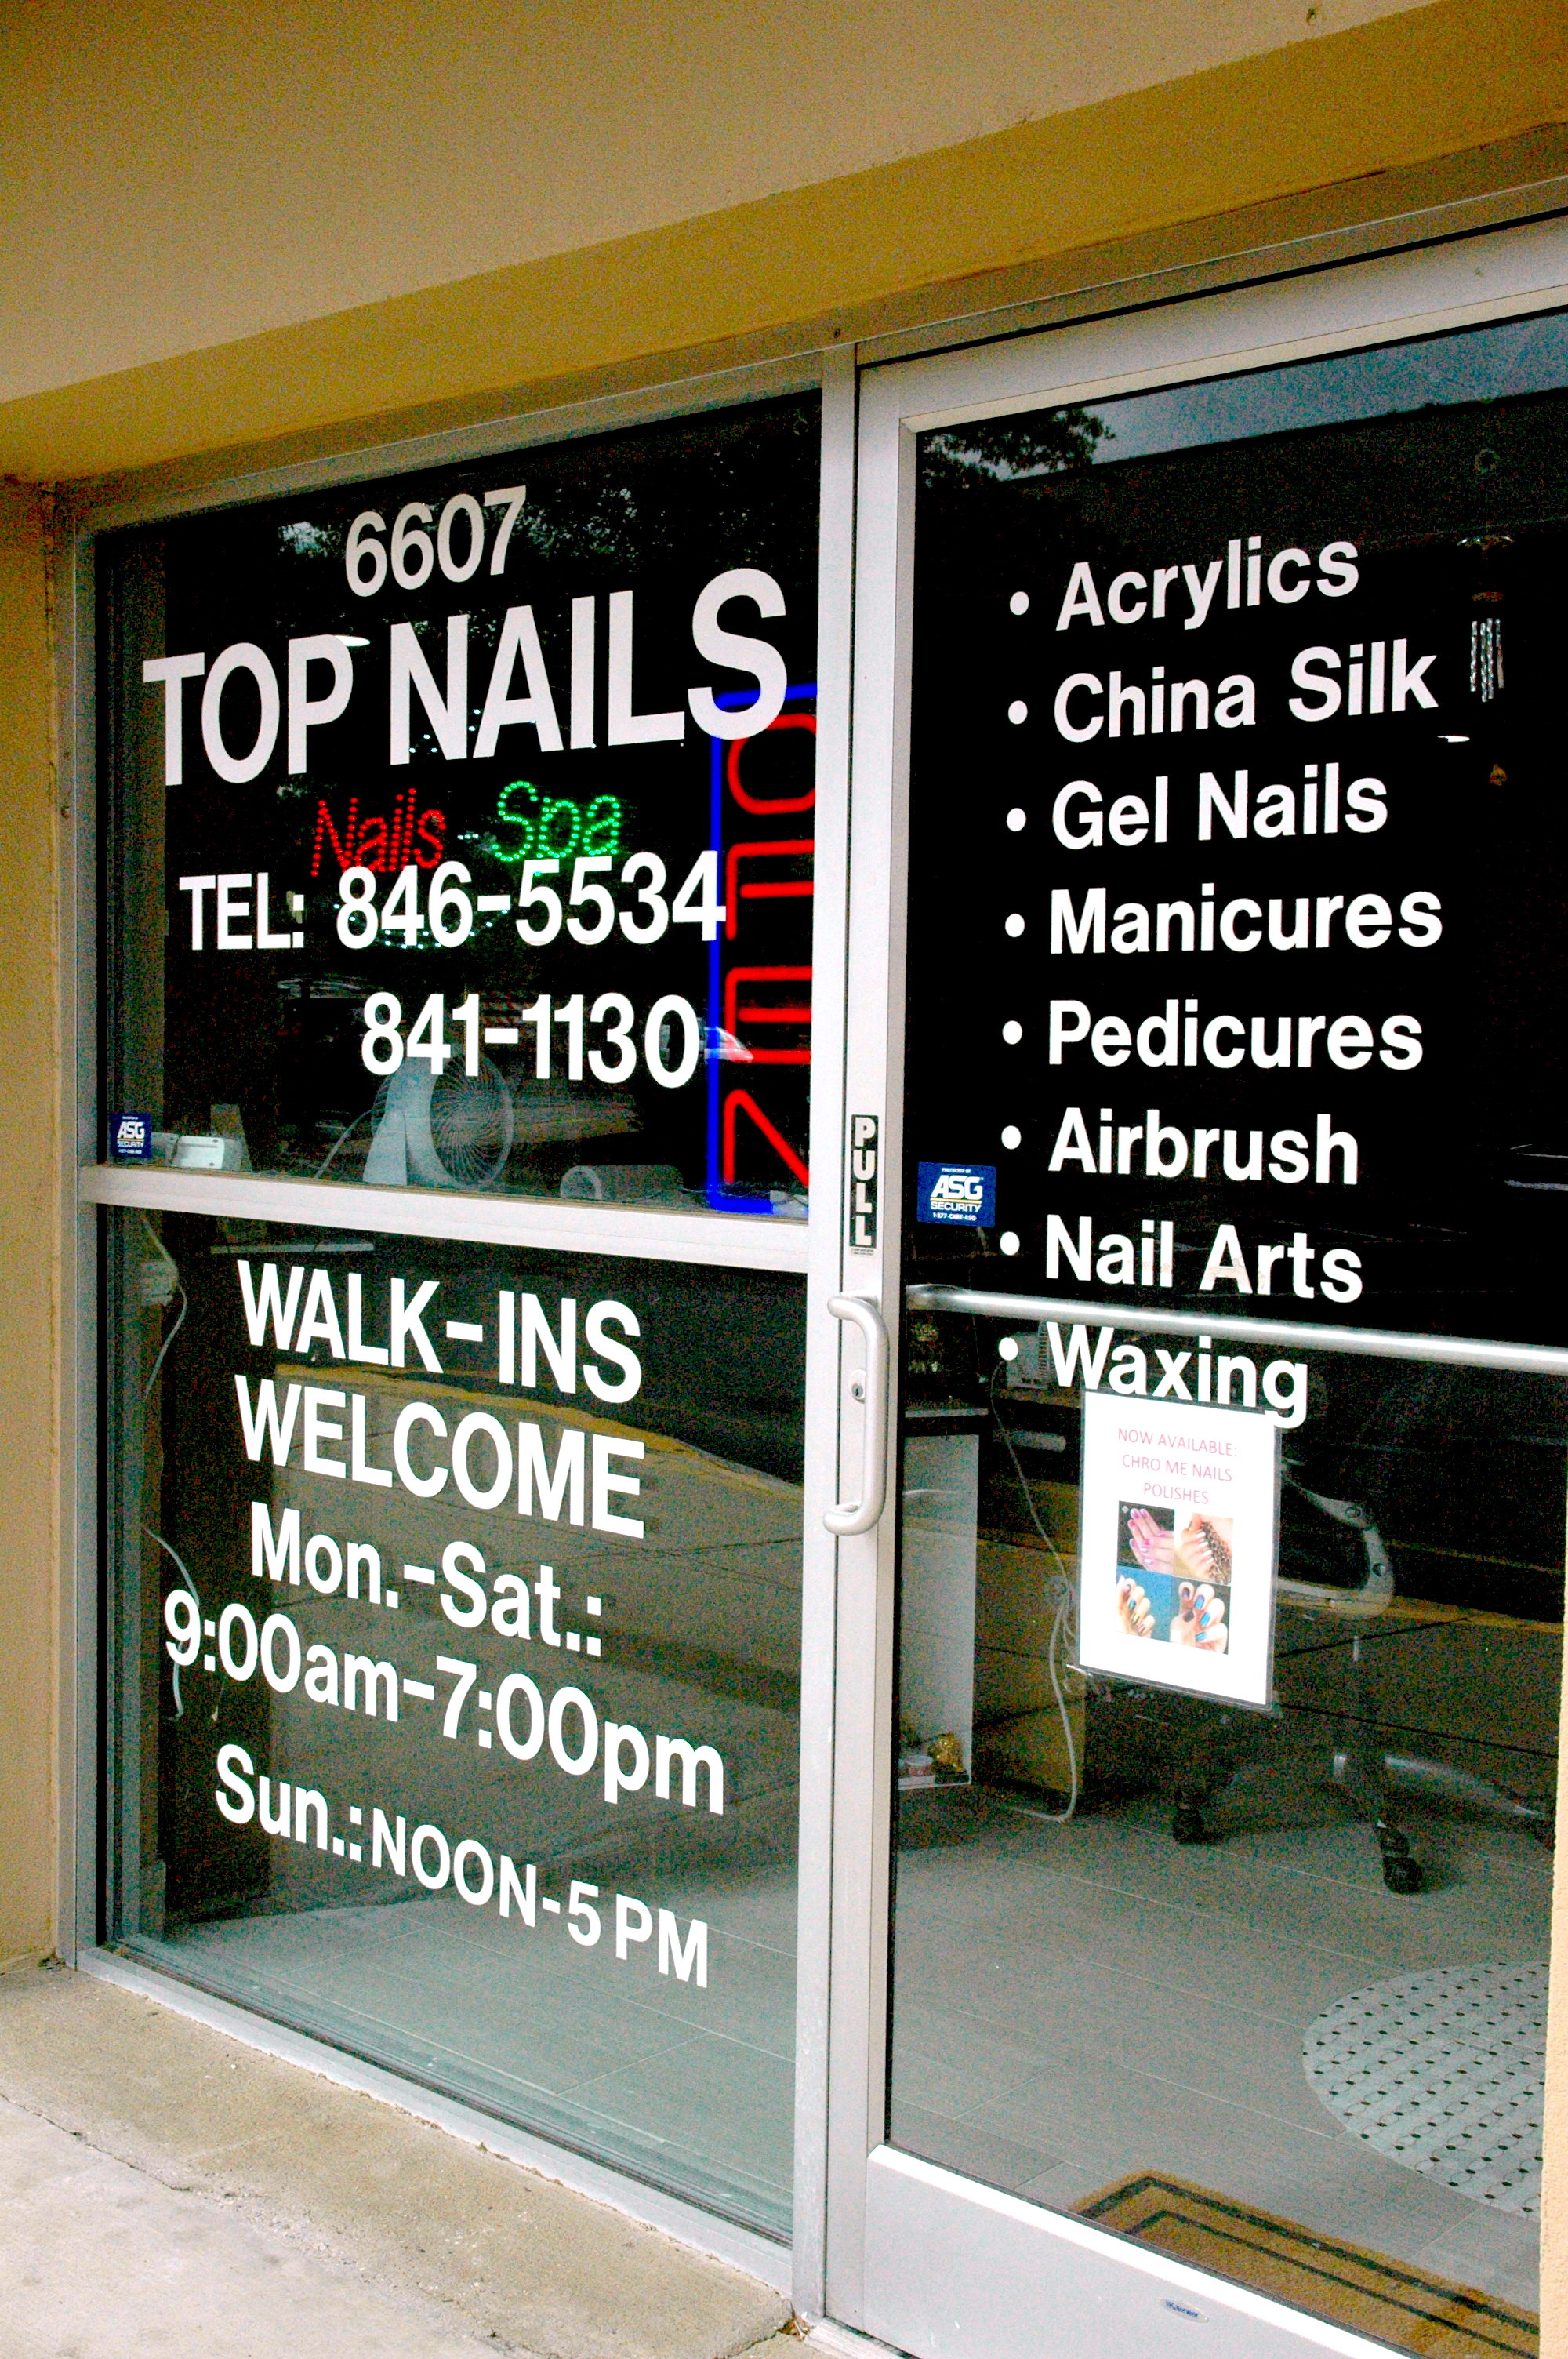 Full Service Nail Salon in Raleigh, NC | (919) 846-5534 Top Nails